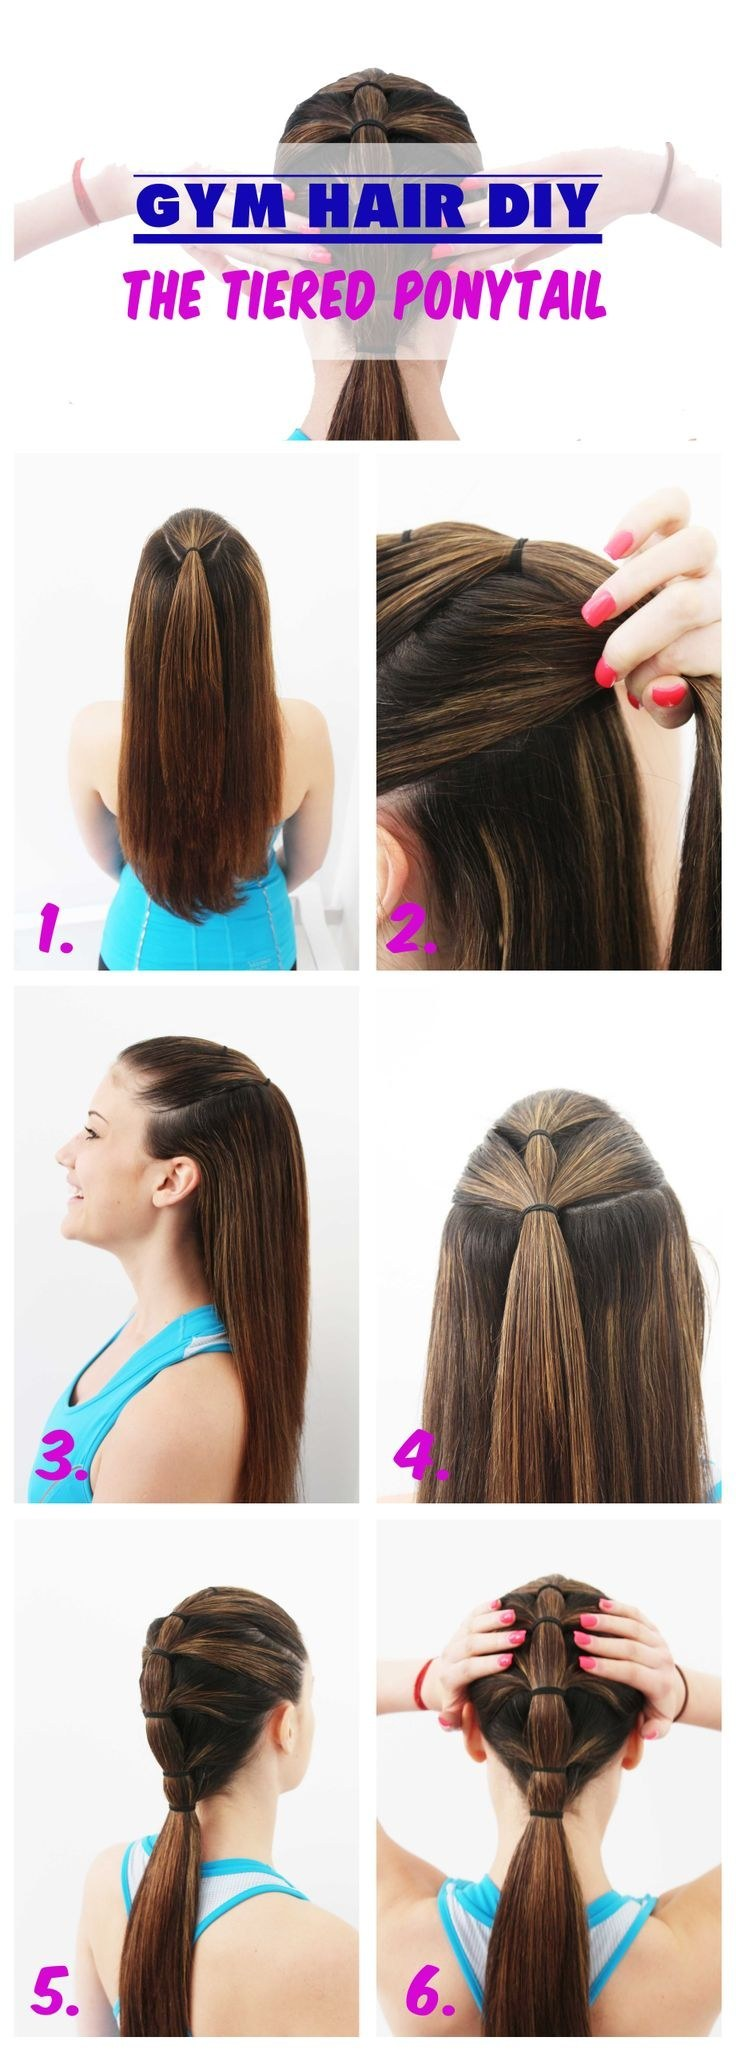 9 Ingenious Hair Hacks For The Gym